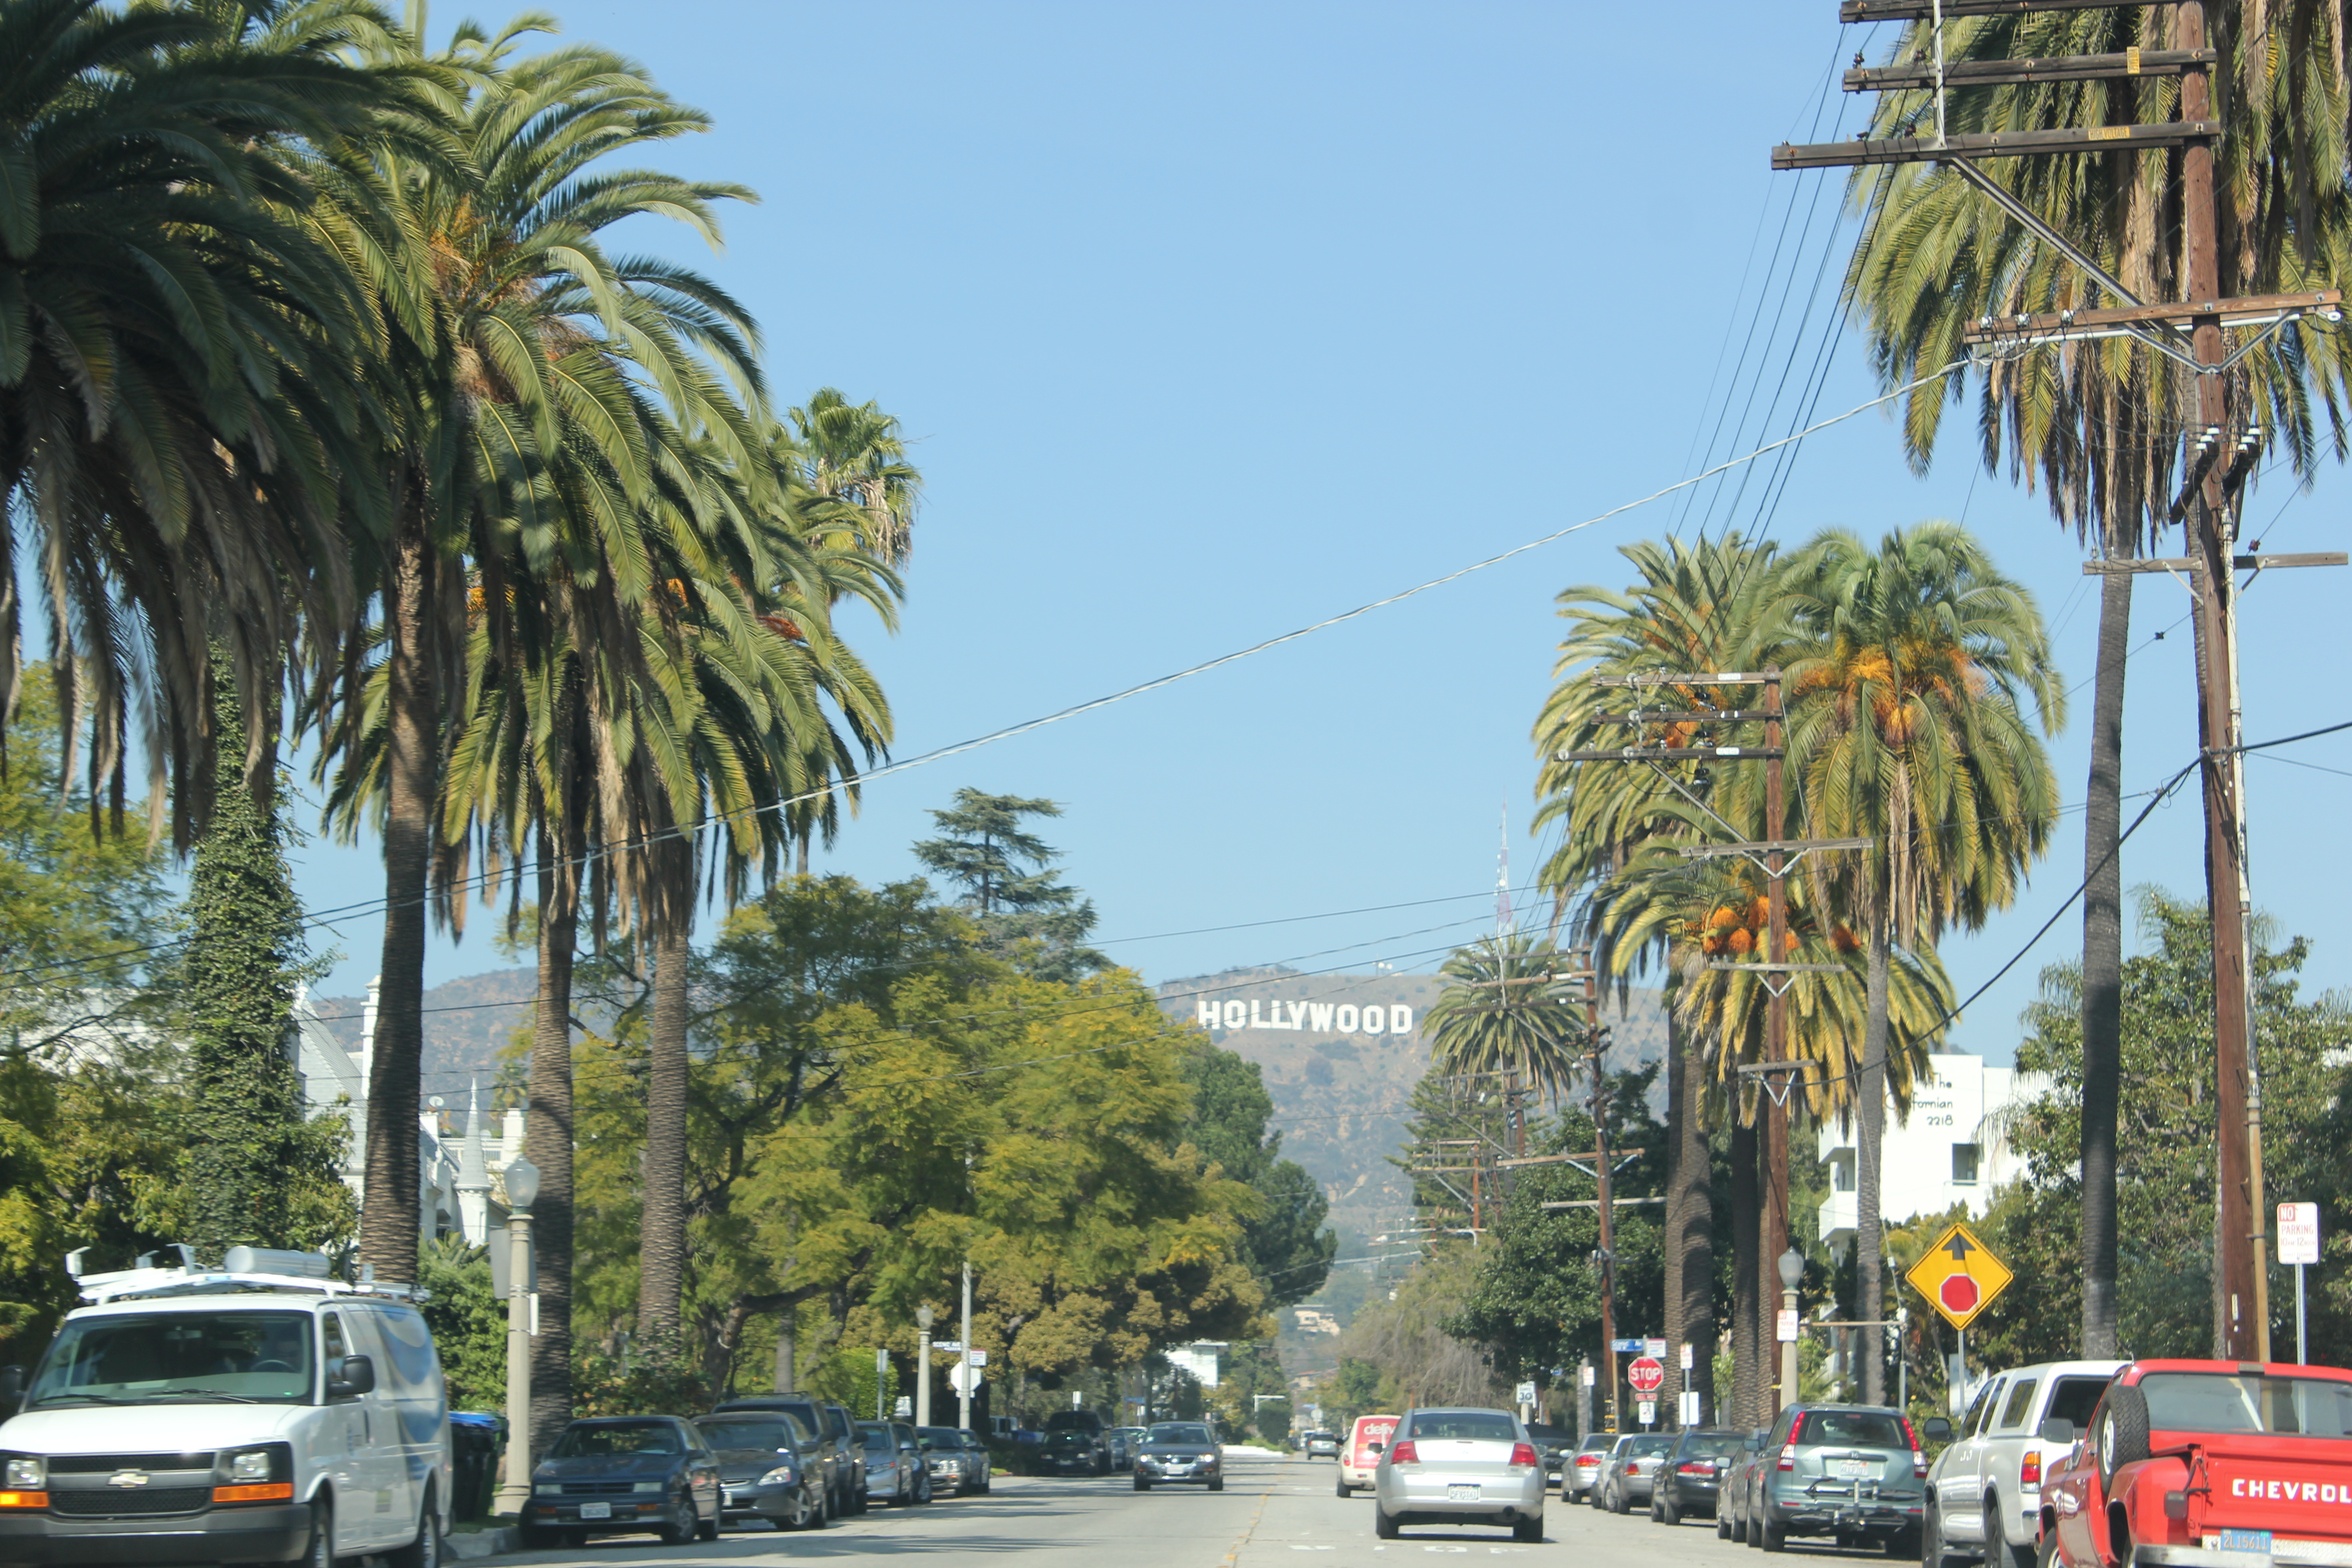 LA …Welcome to Holly...